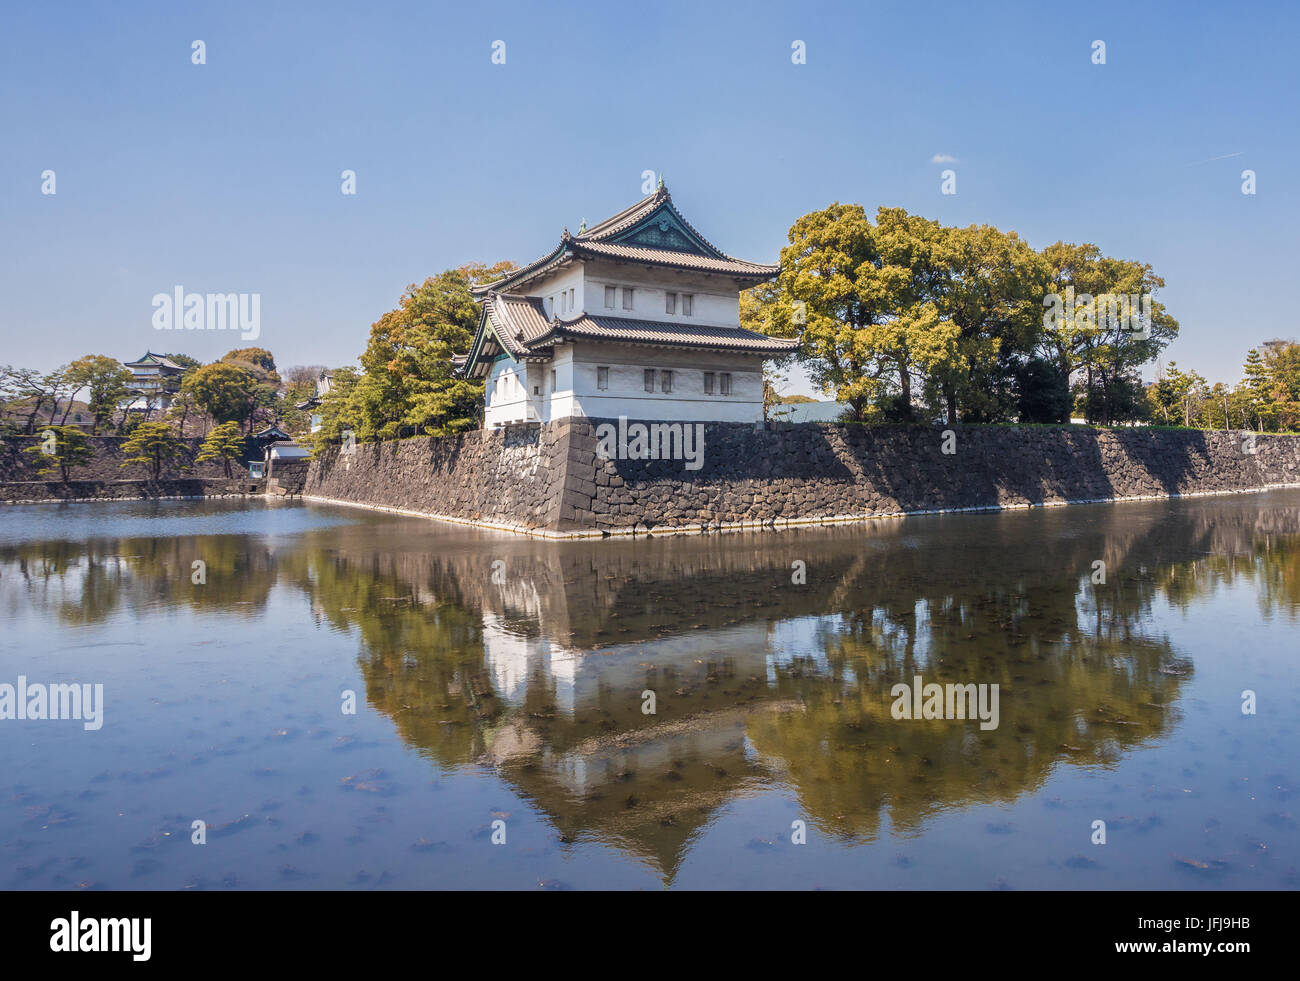 Japan, Tokyo City, Imperial Palace walls, near Otemachi area, - Stock Image